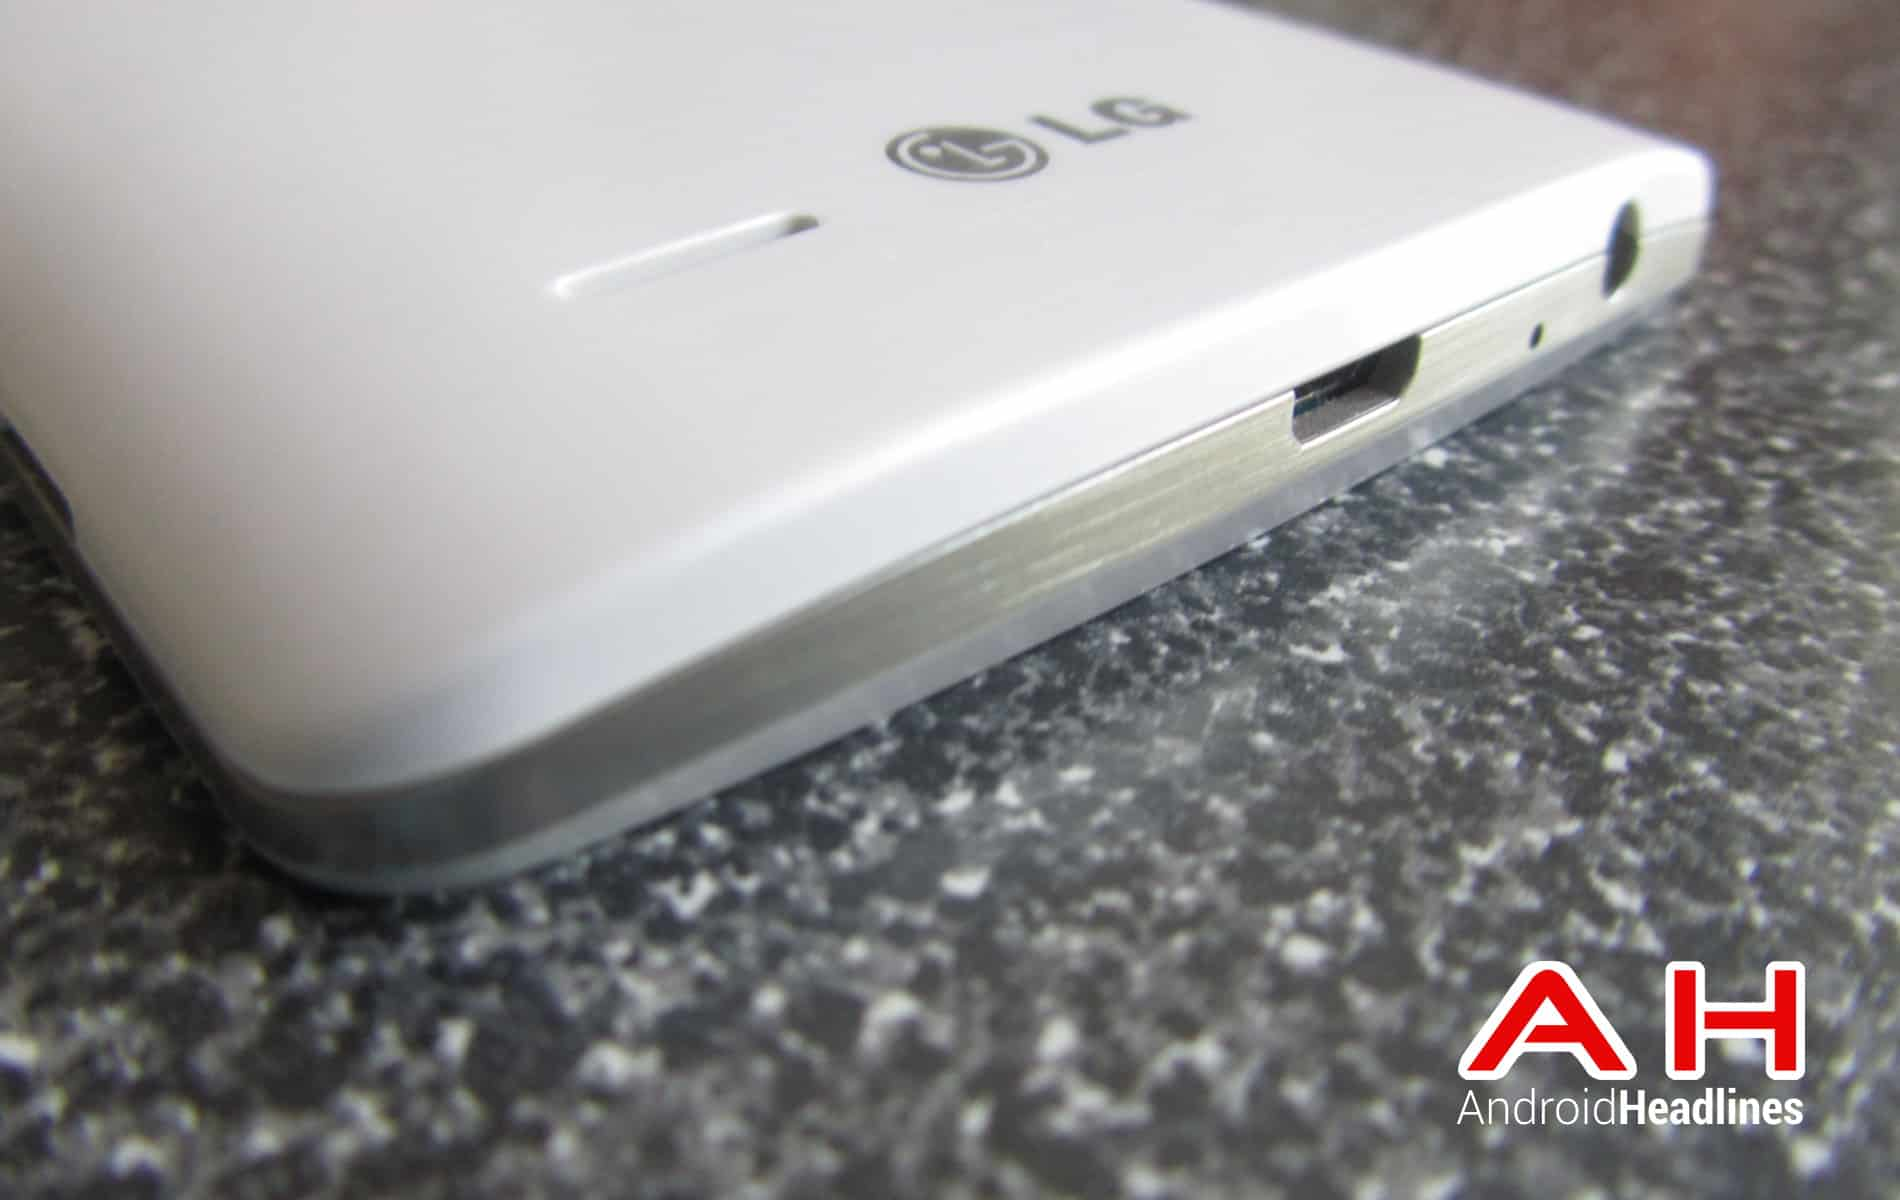 LG G3 Bottom Back 2 AH